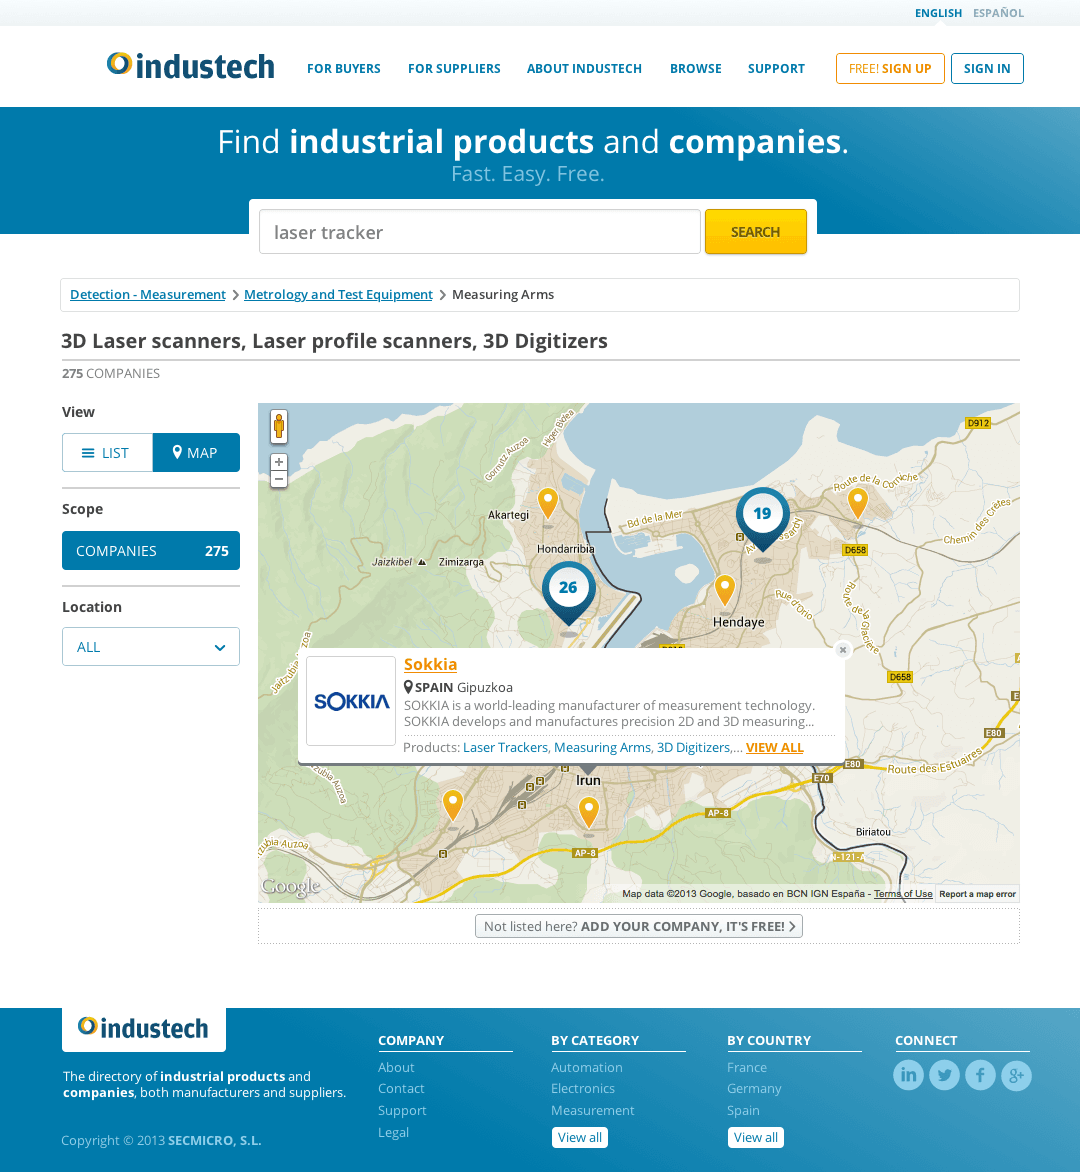 Industech - Search Results Map